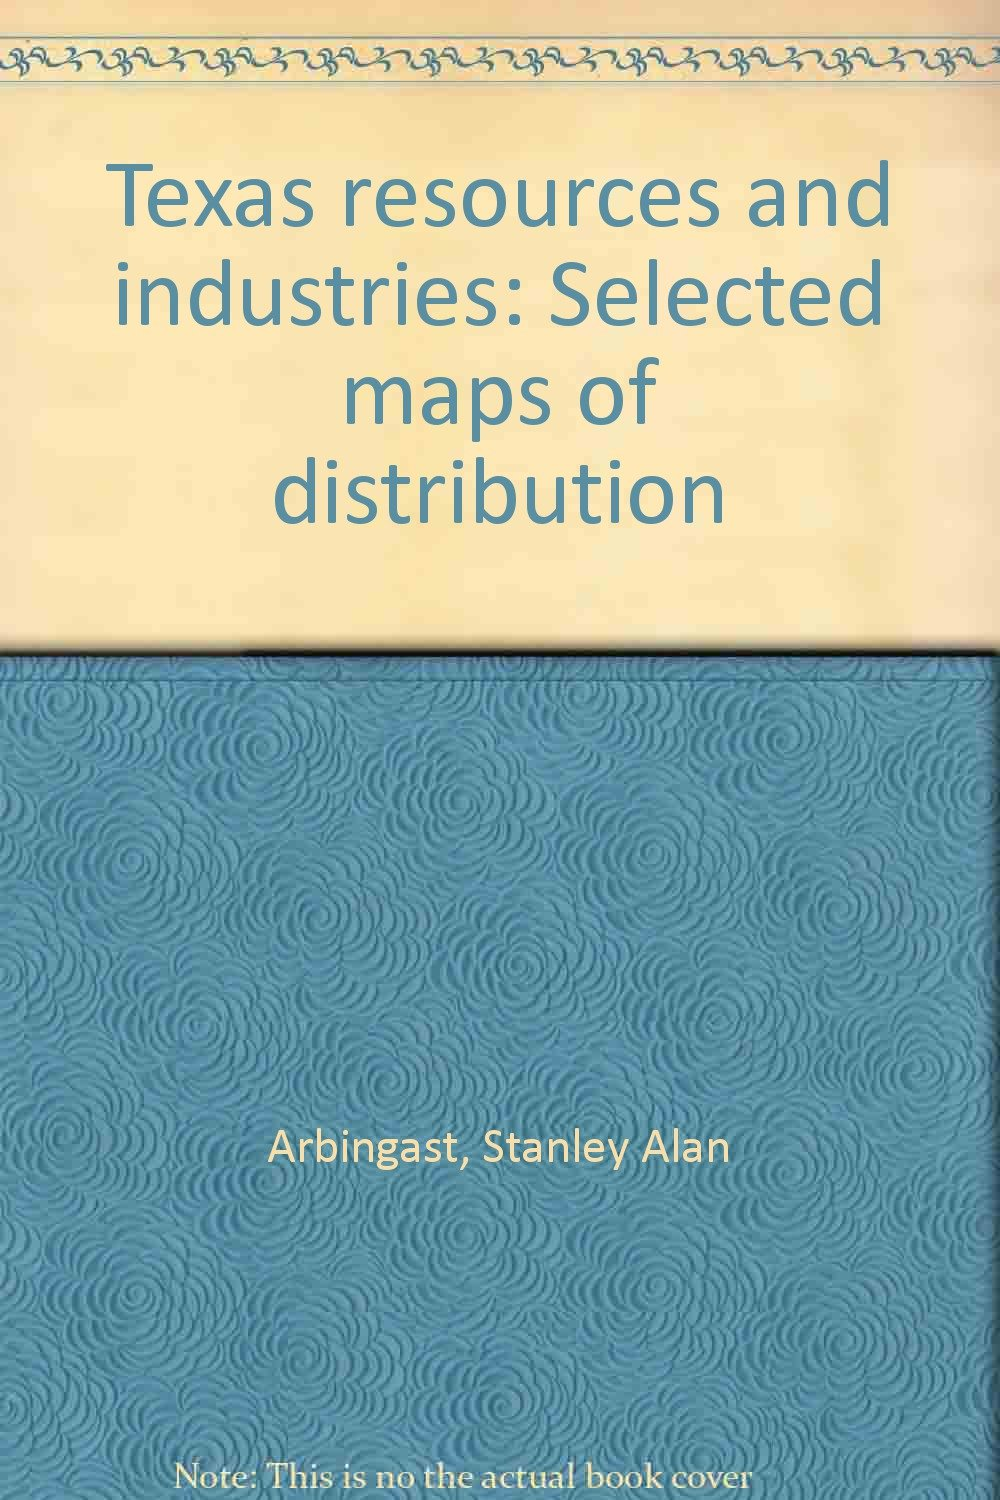 Texas resources and industries: Selected maps of distribution